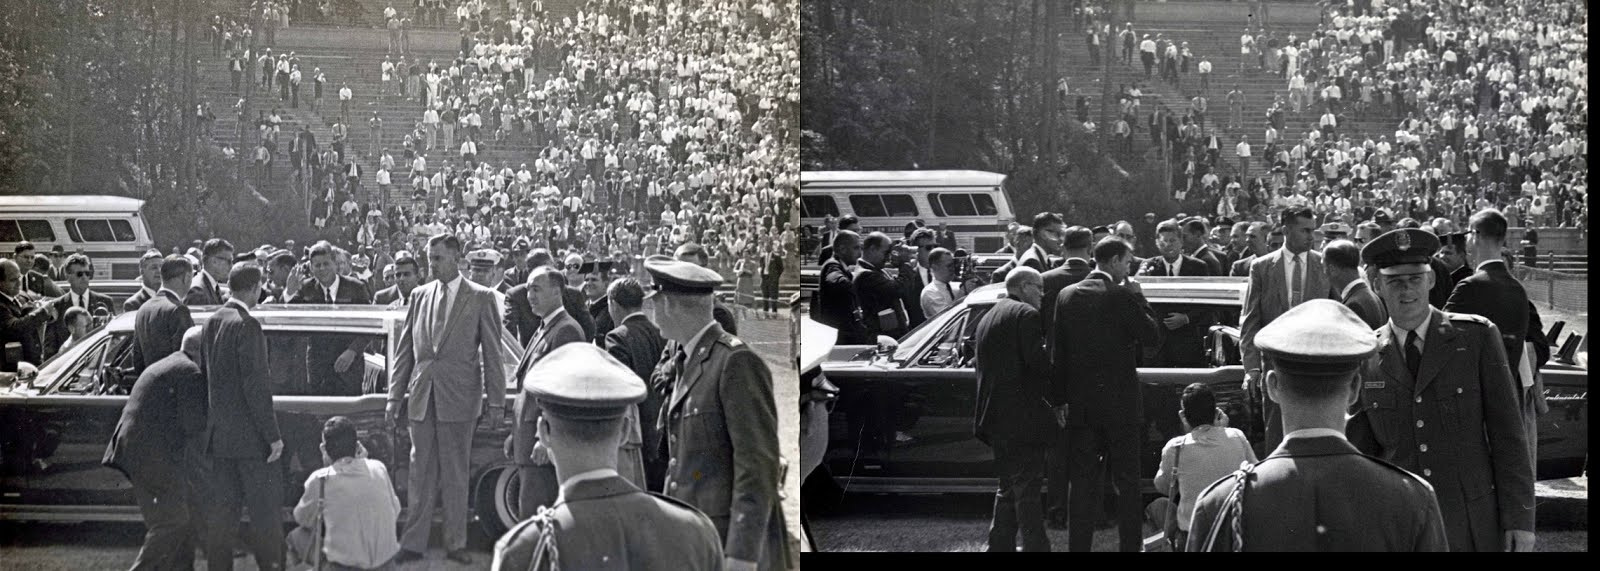 10/12/61: JFK at UNC and the bubbletop he allegedly didn't want once again